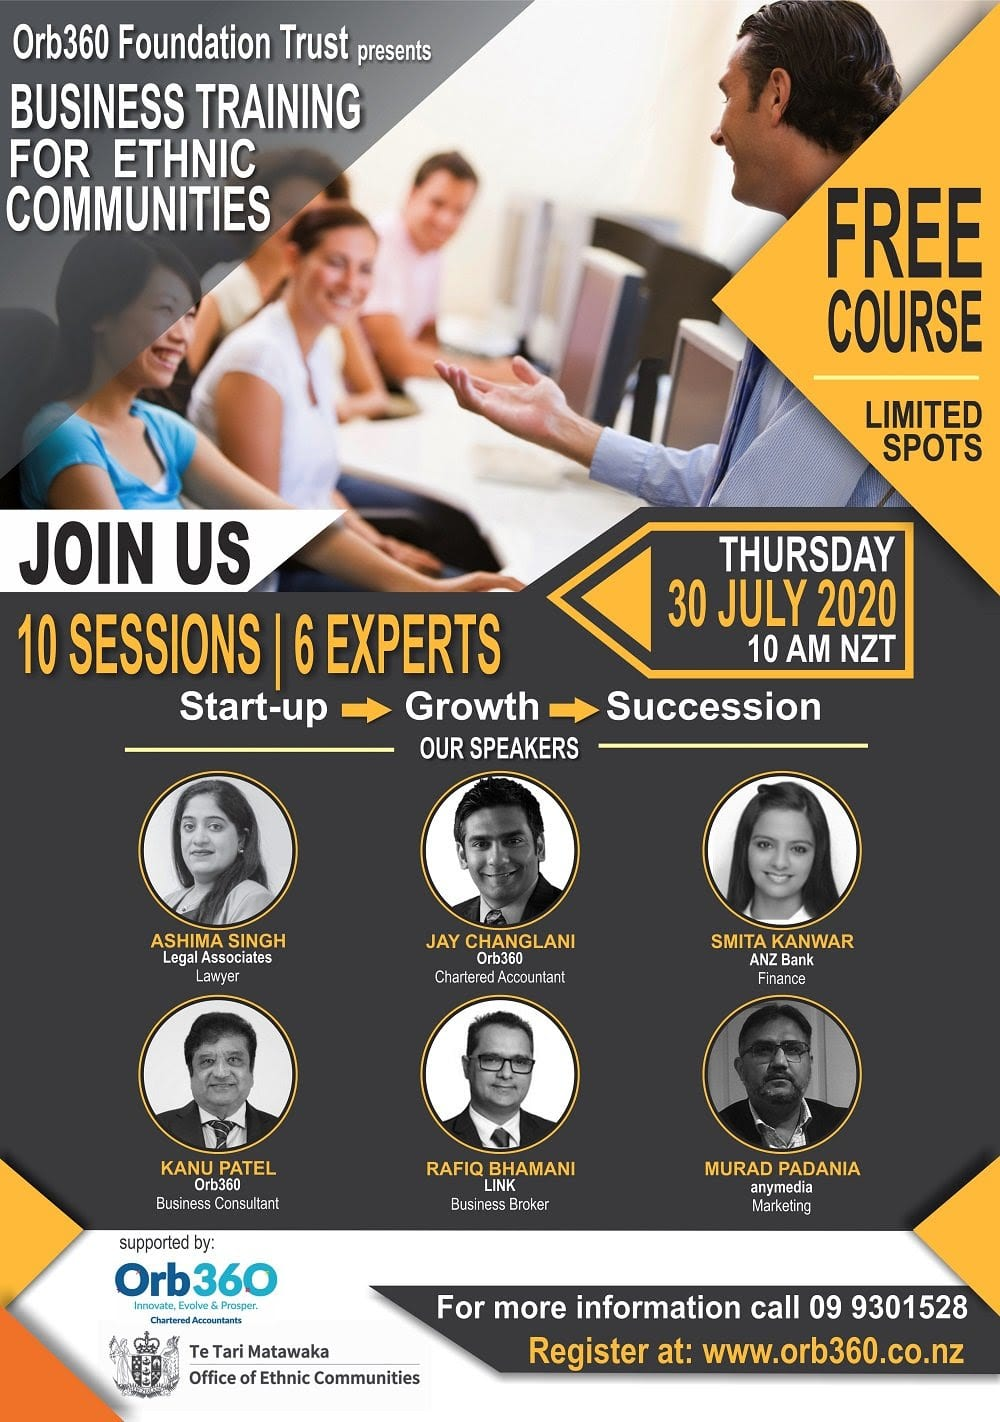 Free Business Training for Ethnic Communities